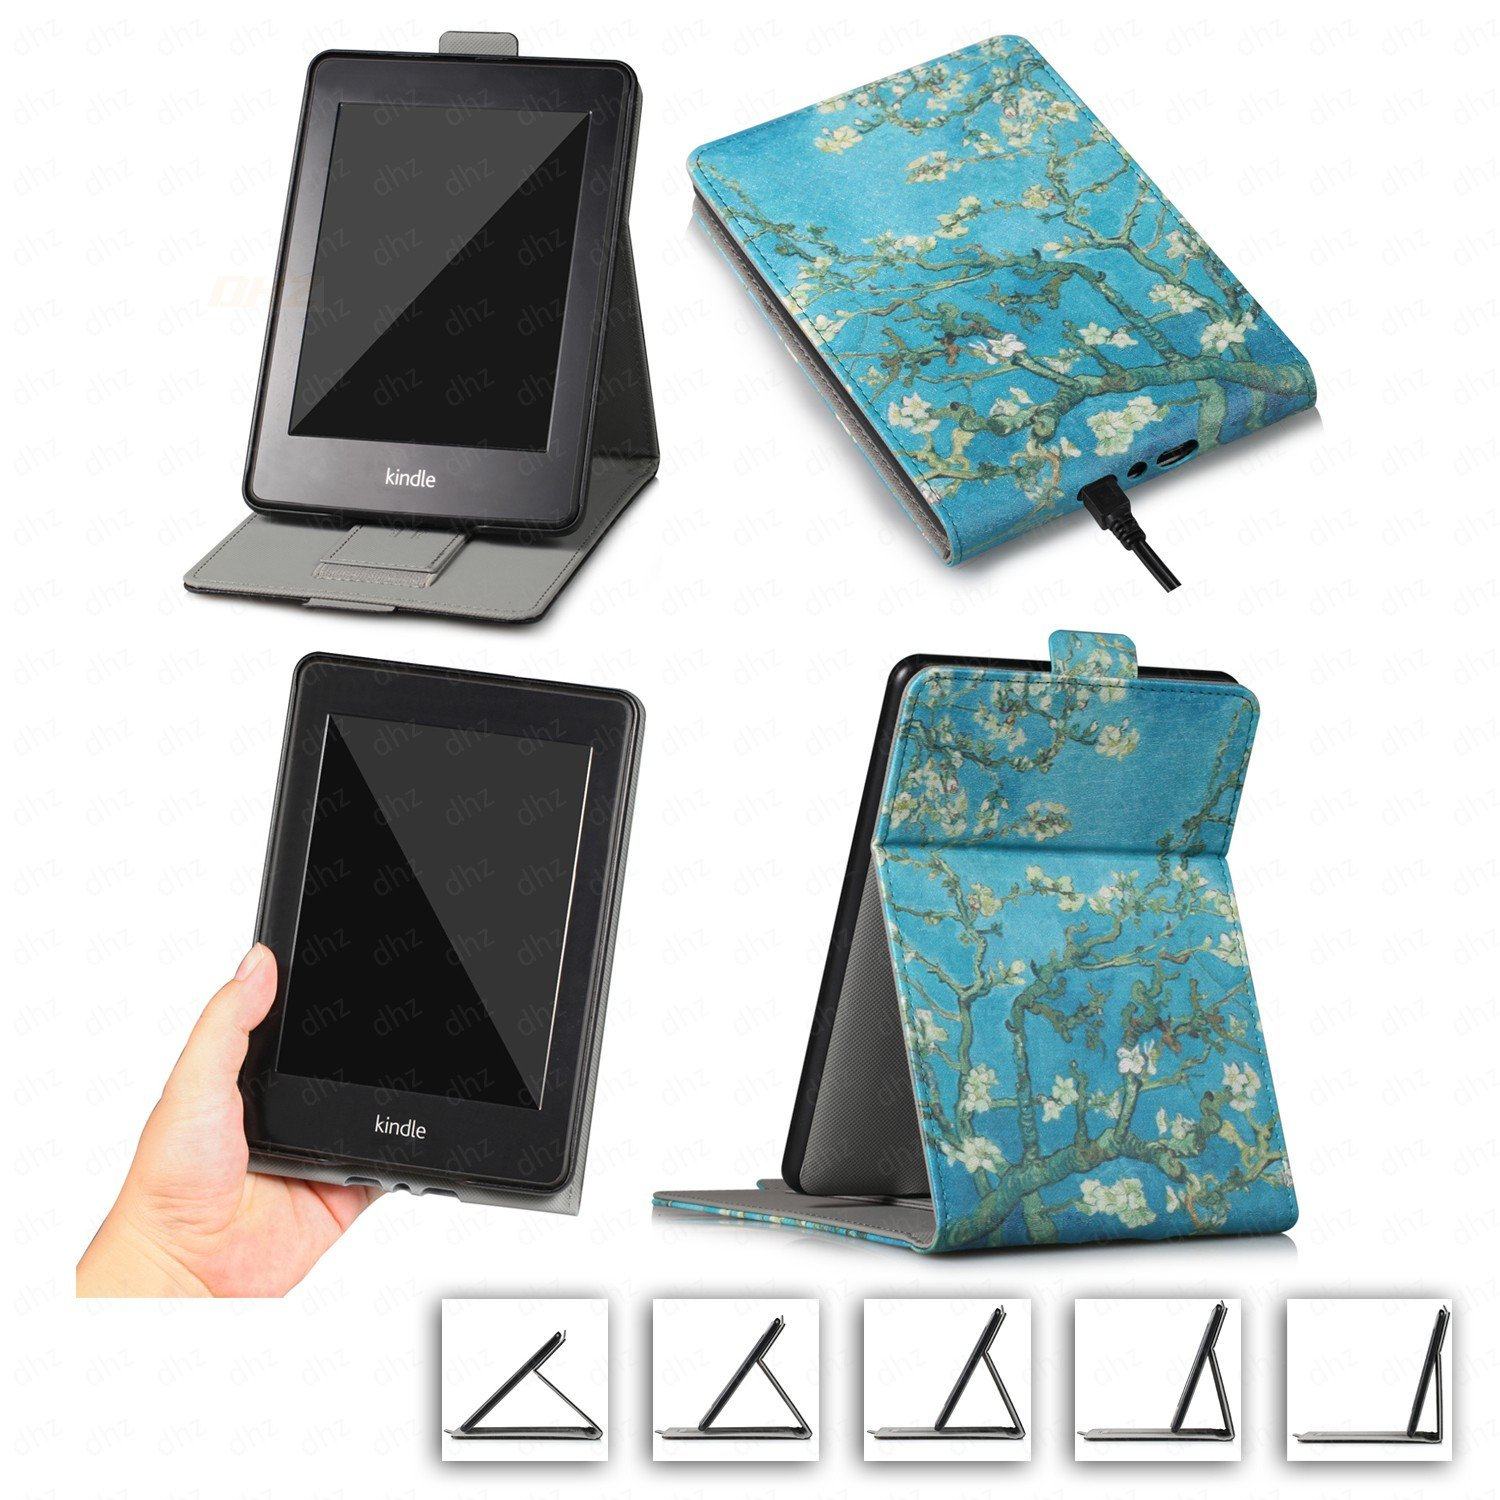 DHZ Multi-Viewing Case for Kindle Paperwhite - PU Leather Vertical Stand Flip Cover with Hand Belt Card Slot Auto Sleep/Wake for Amazon Paperwhite(All 2012 2013 2014 2015 2016 Versions),Apricot Flower